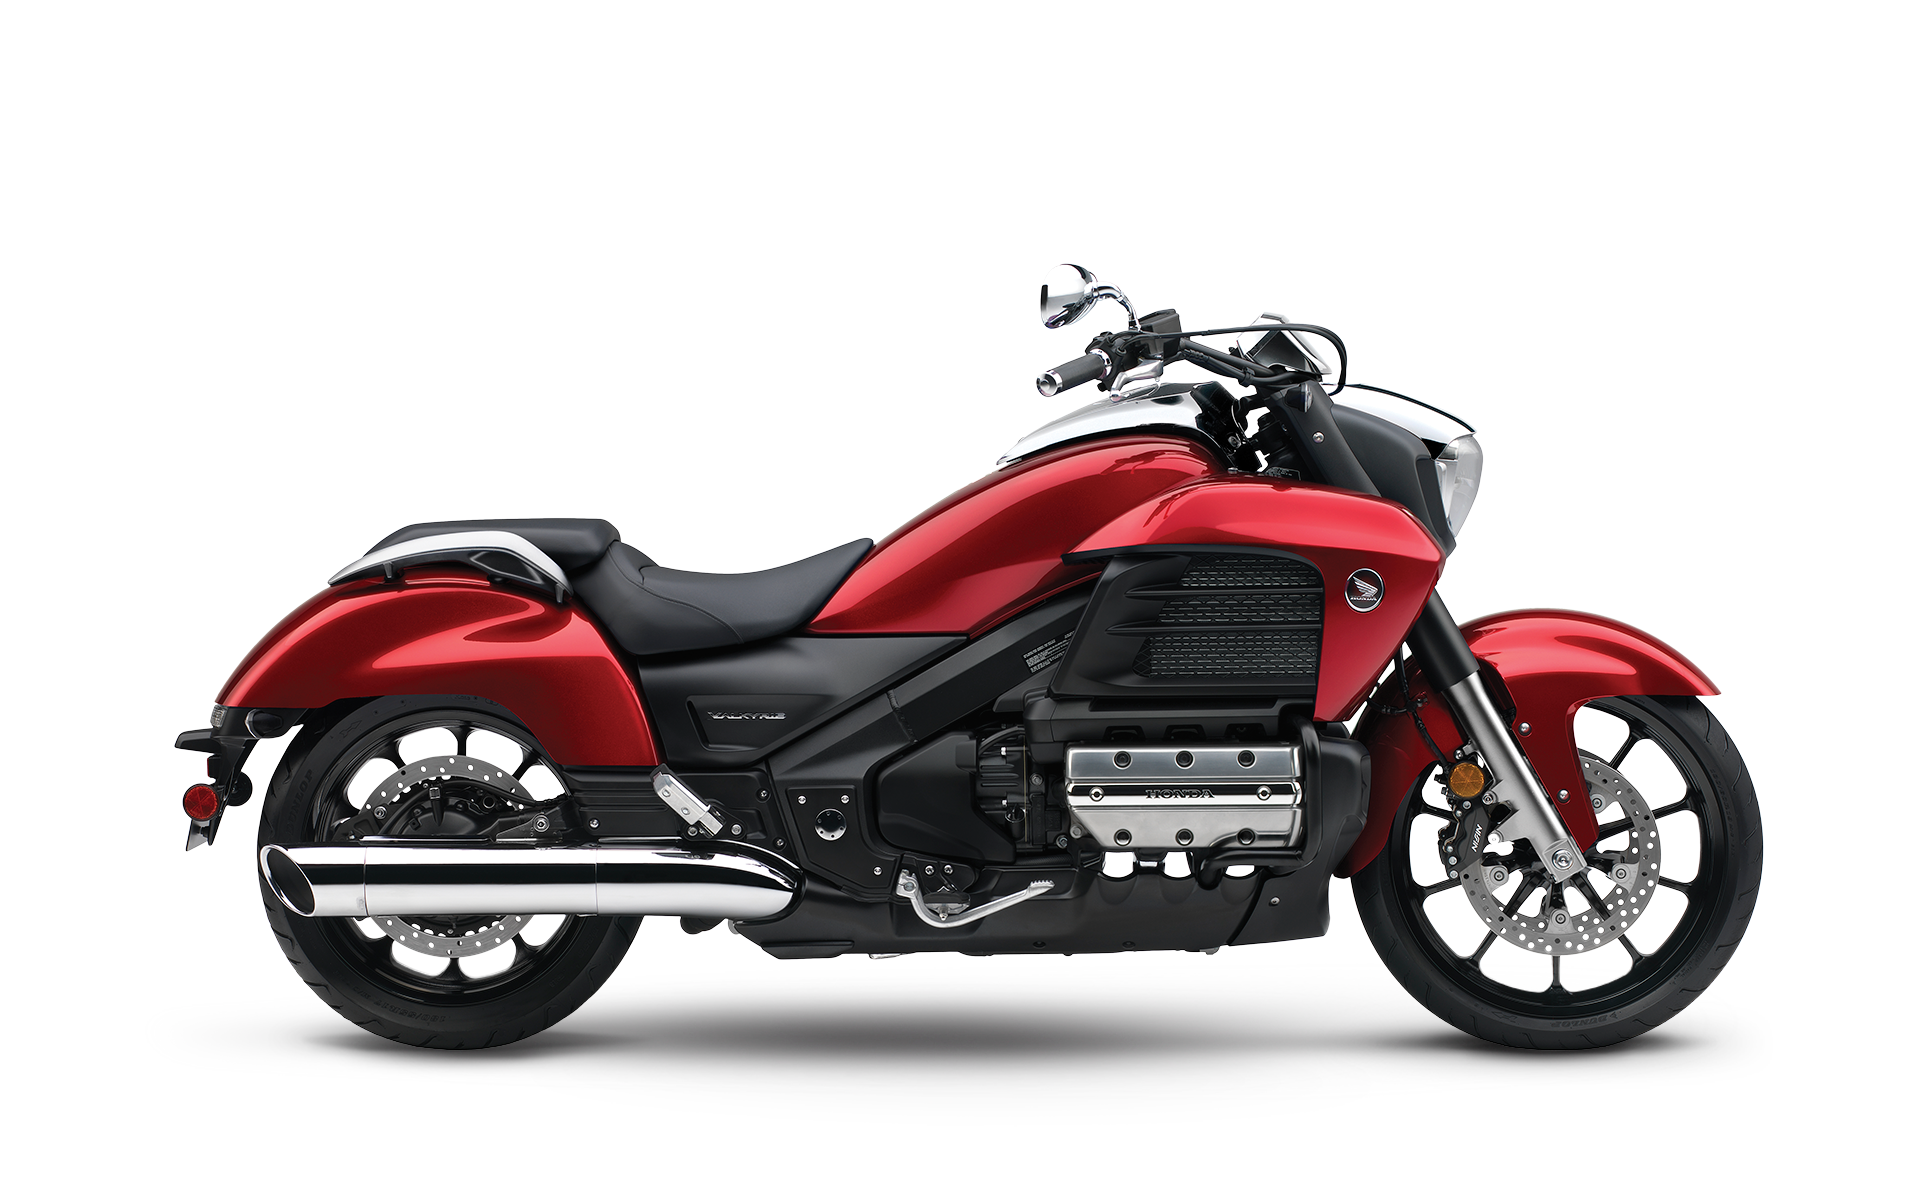 Honda Fury ABS 2015 images #83356